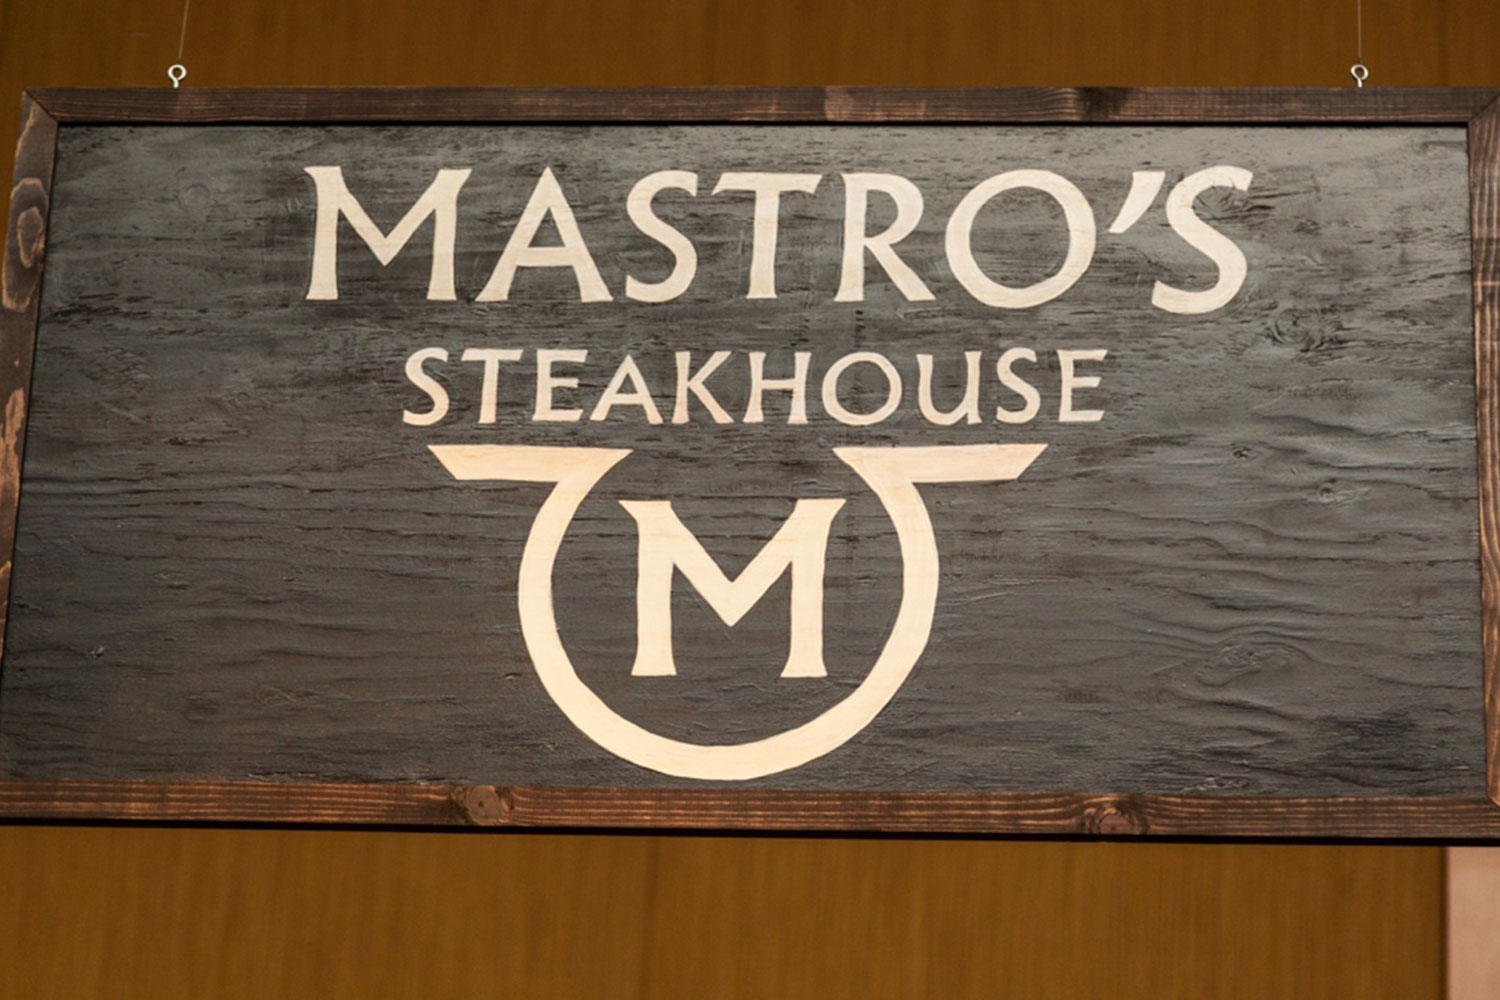 toast-catering-custom-signs-mastros-steakhouse-10twelve.jpg